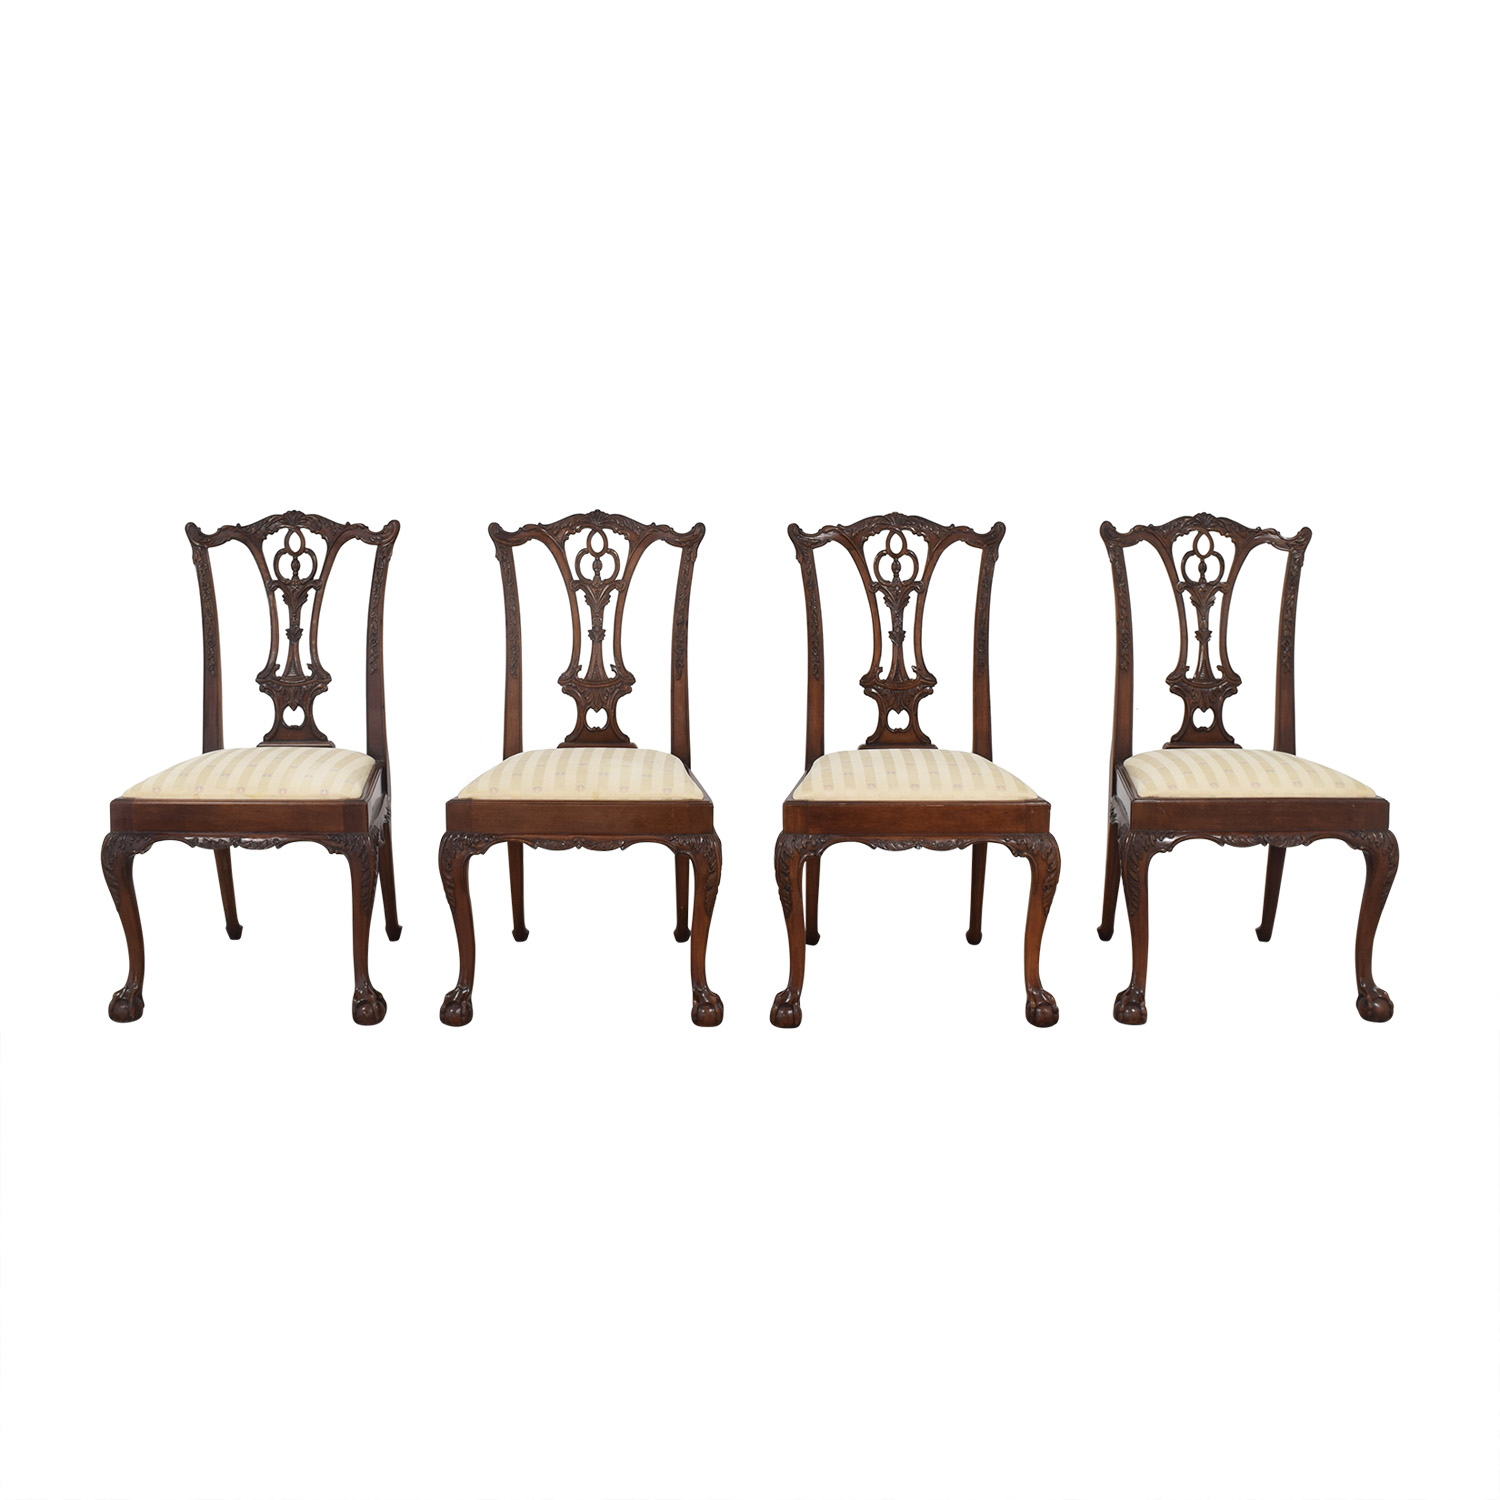 Macy's Macy's Dining Chairs ma